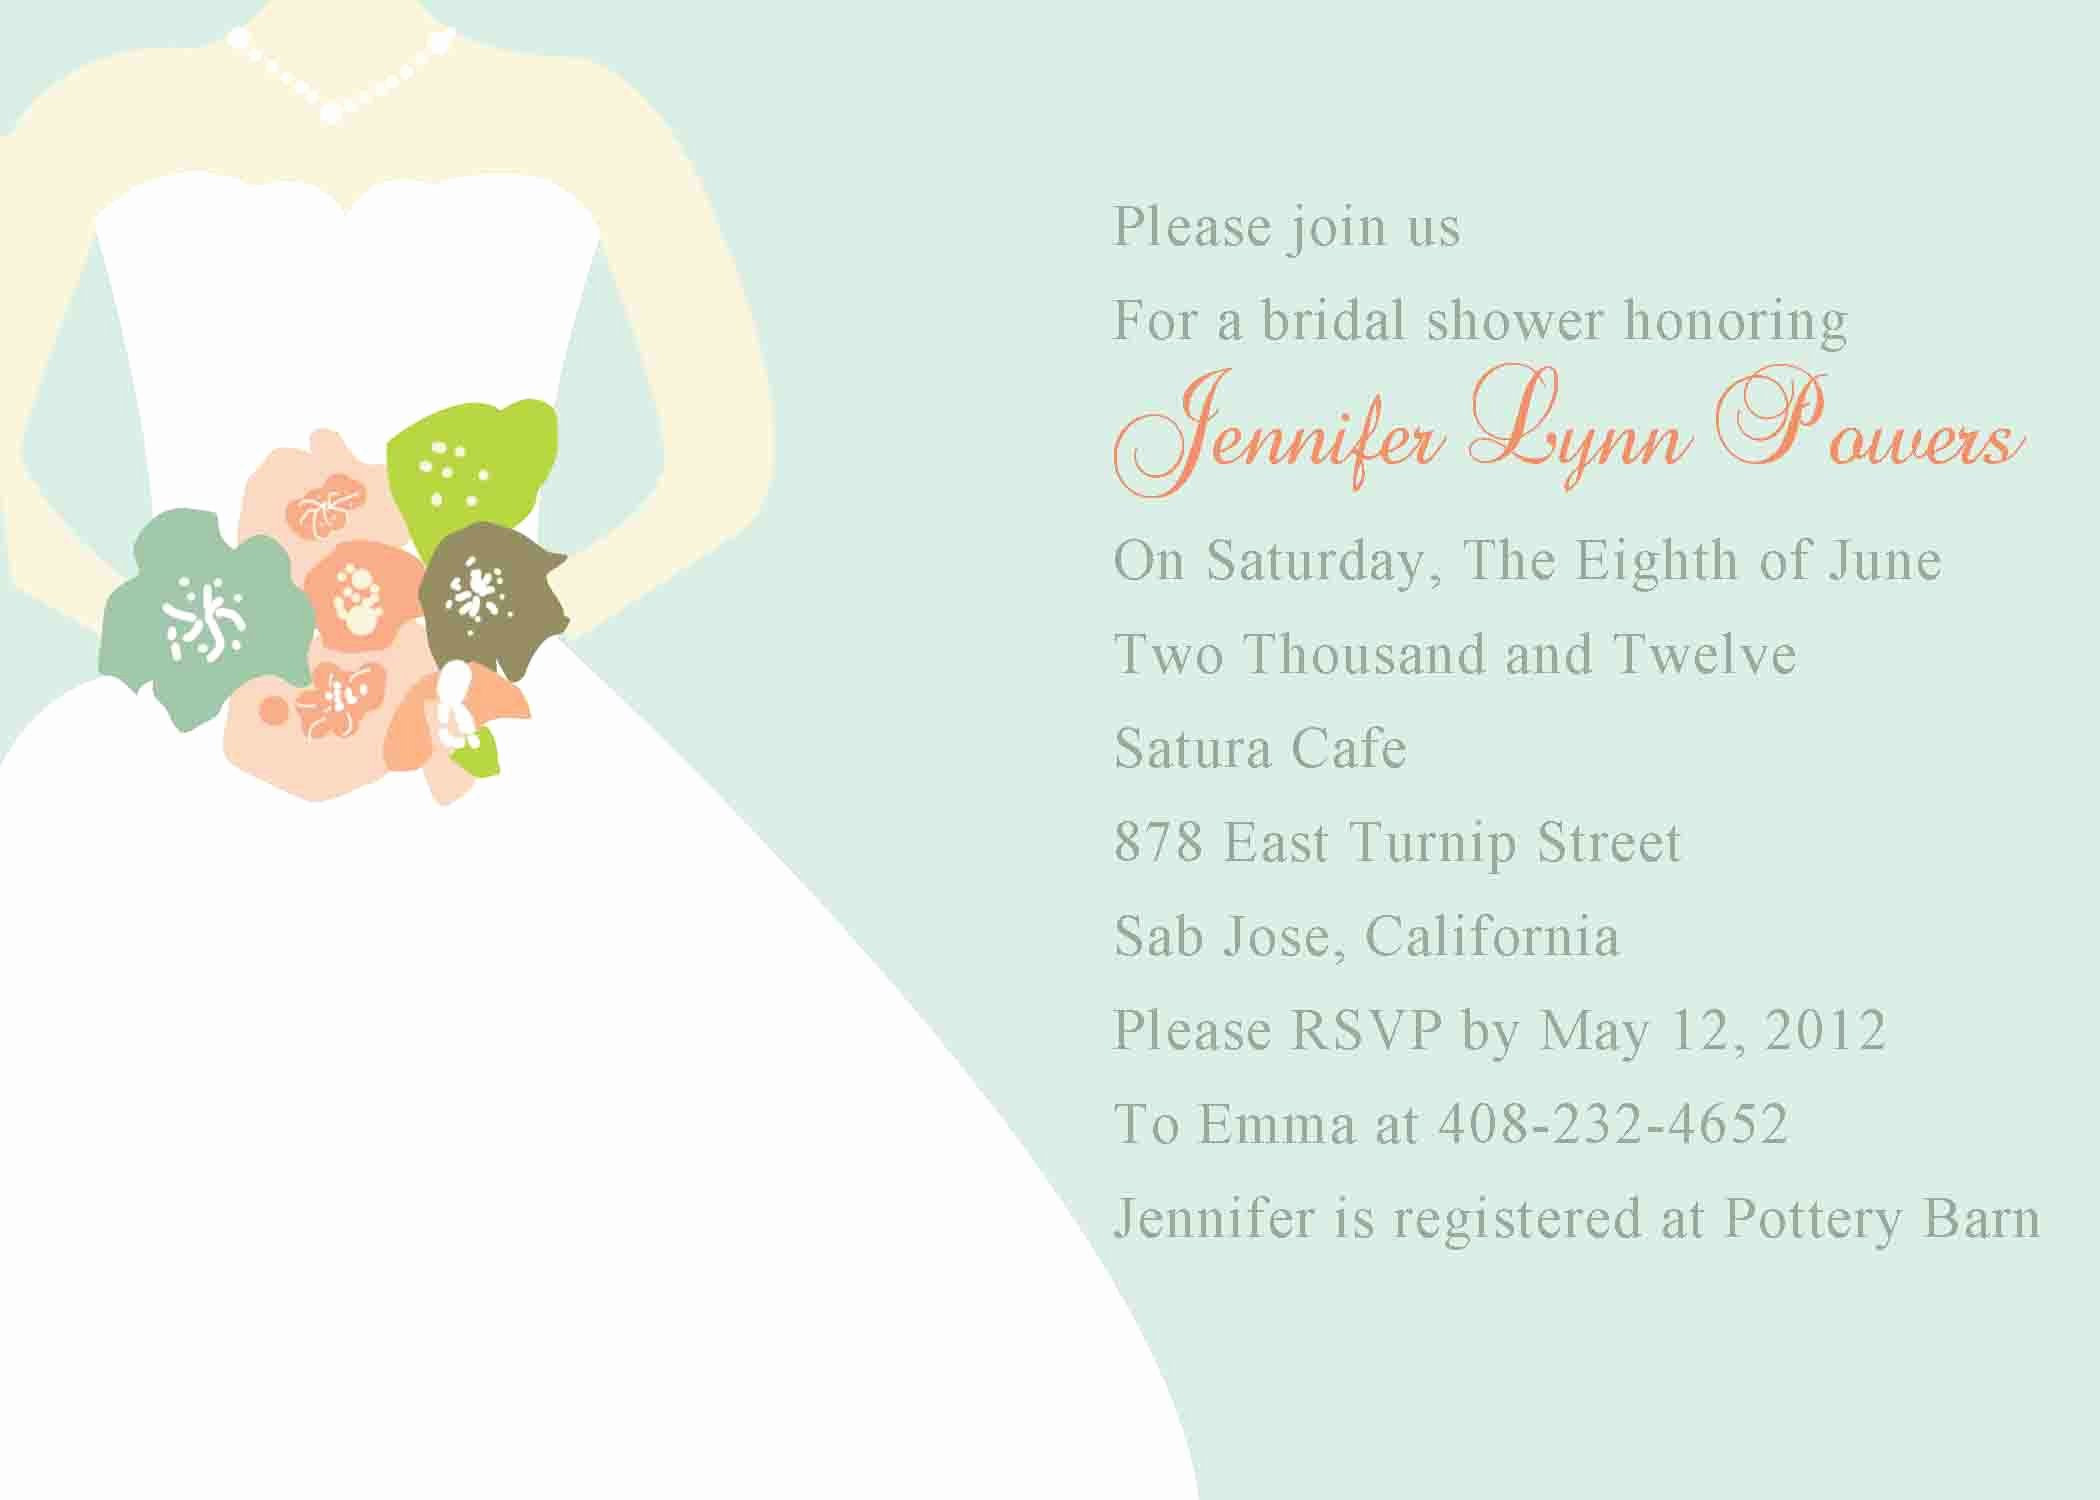 Wedding Shower Invitations Template Luxury Bridal Shower Invitation Templates Bridal Shower